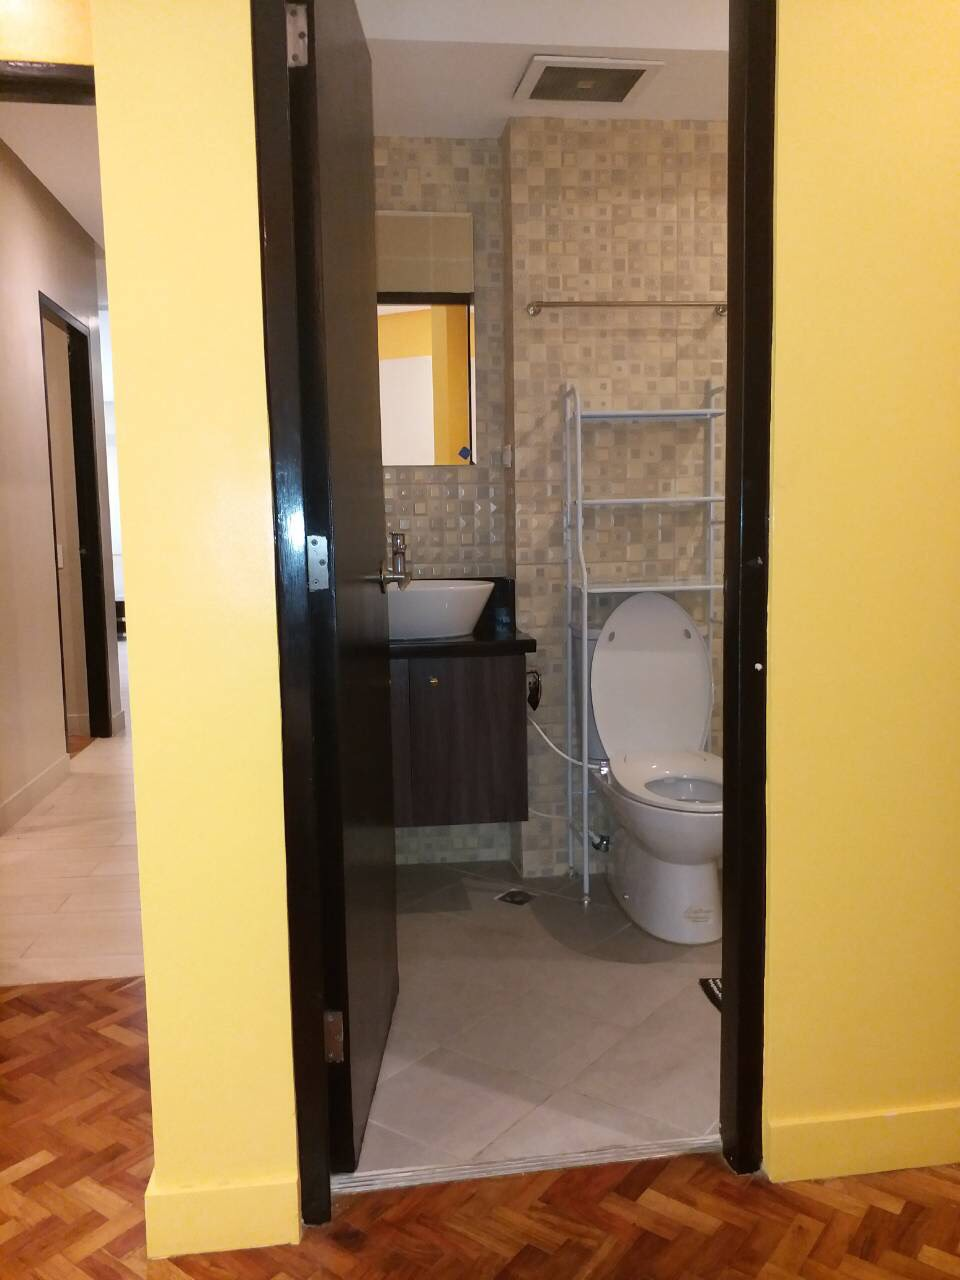 For Rent, Almond, Two Serendra, BGC, Taguig City Bathroom 1